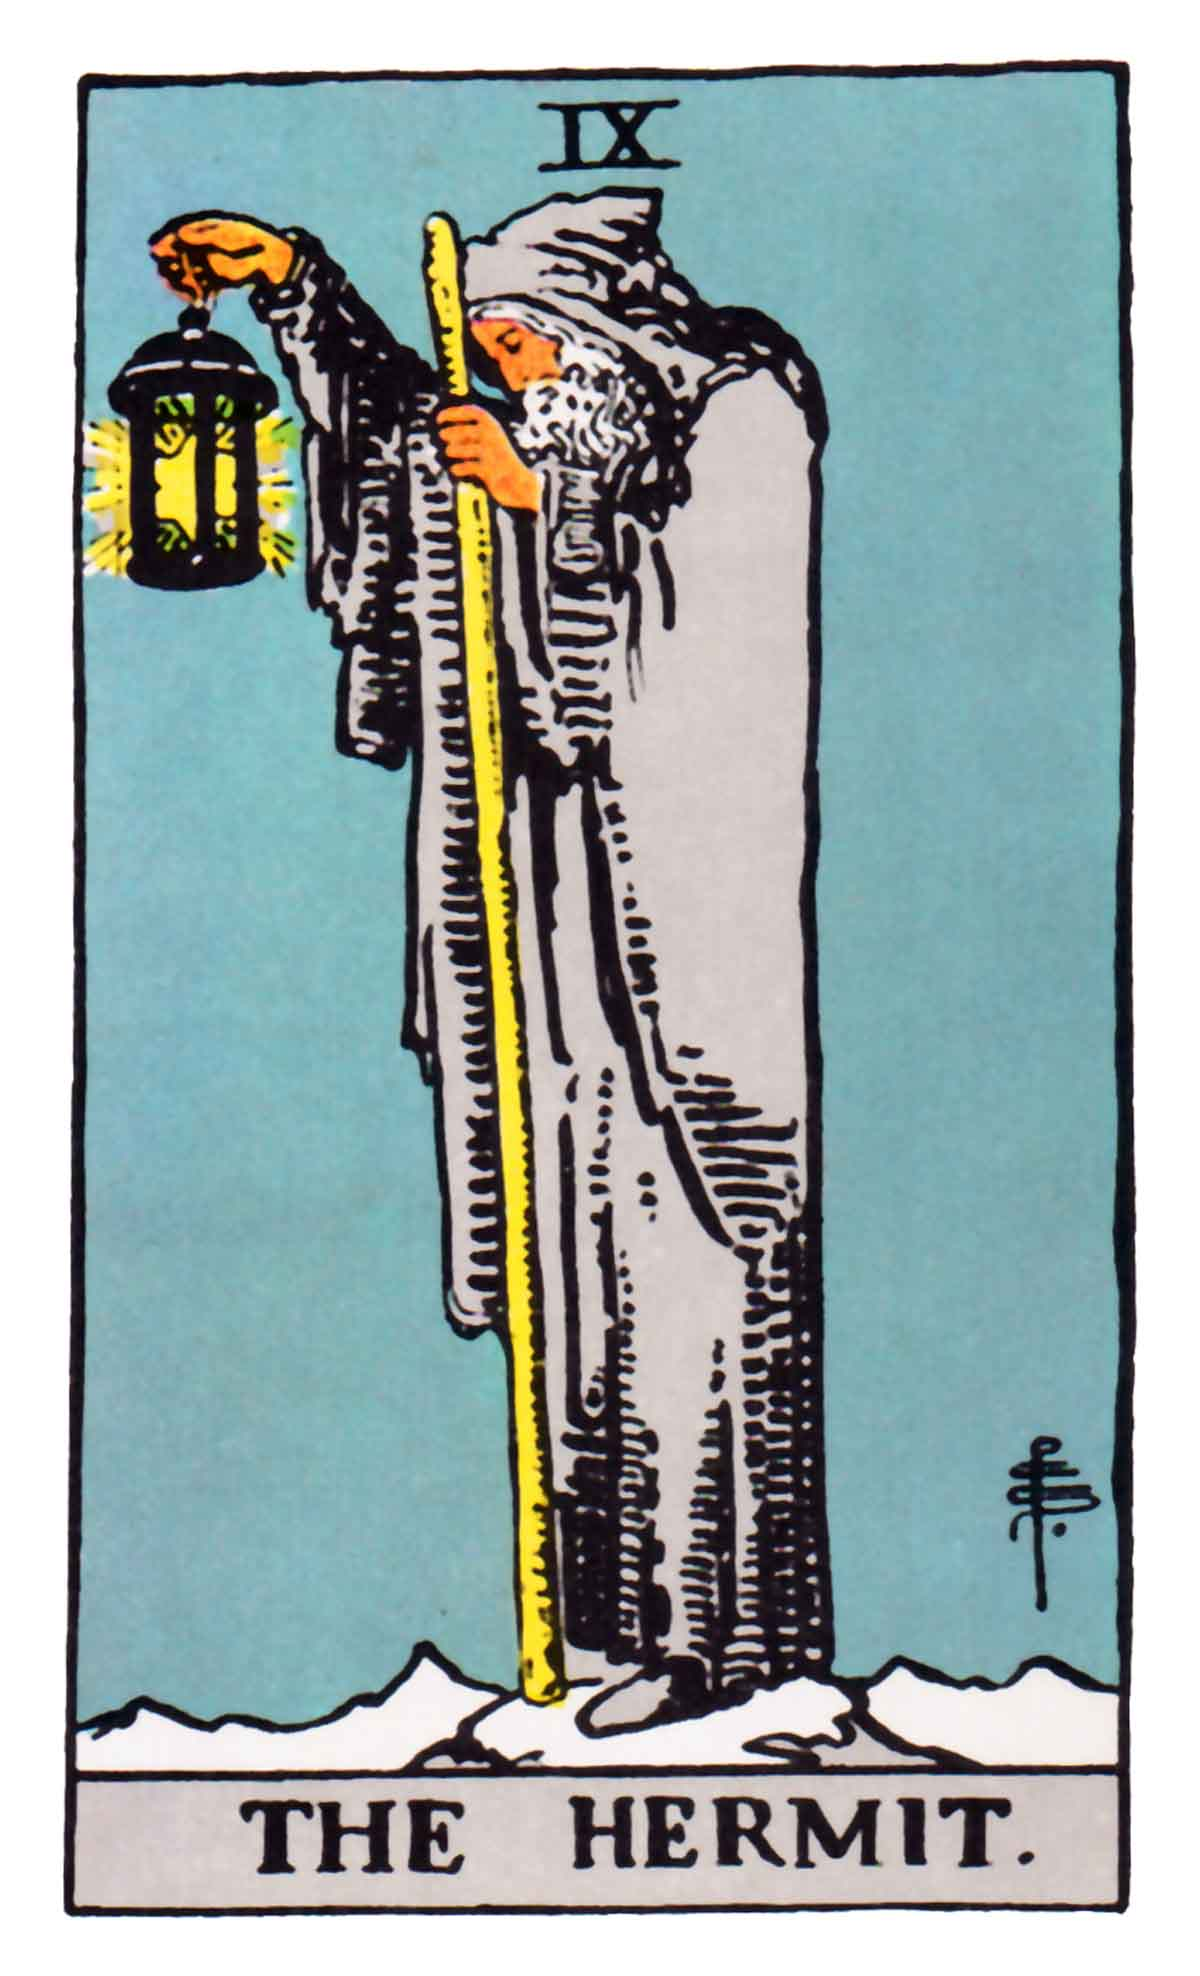 The Tarot Parlour Email Readings: The Hermit Tarot Card Meaning In Readings: Isolation